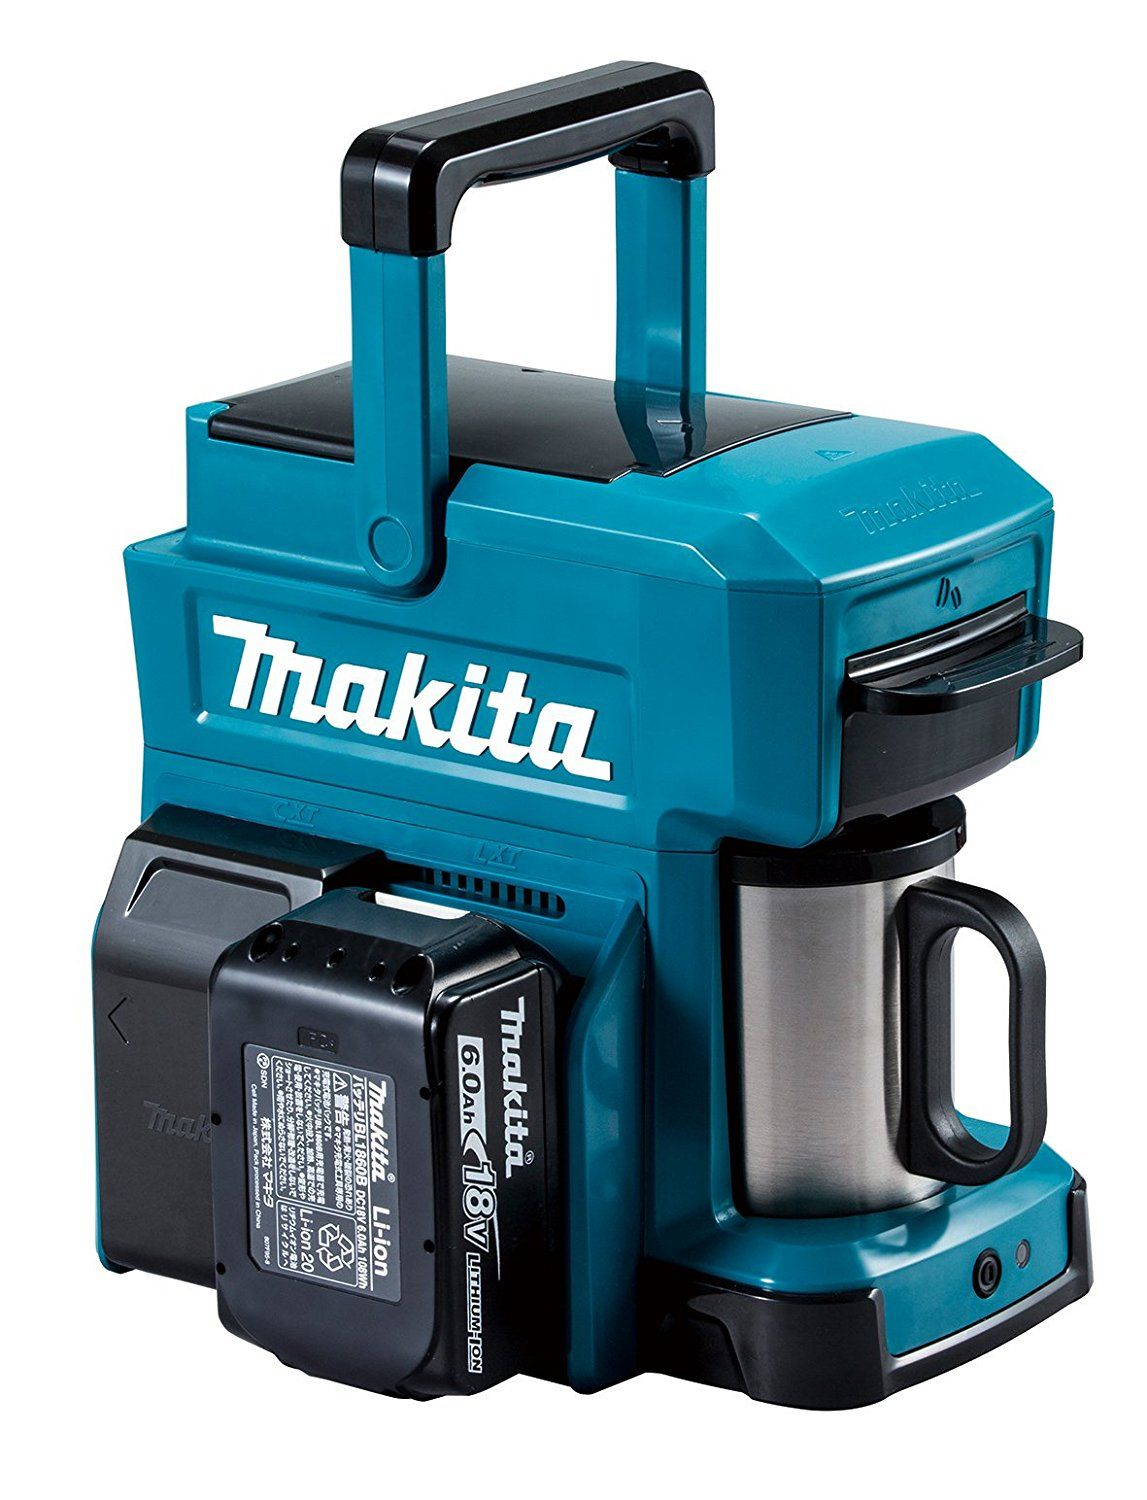 MAKITA Rechargeable Coffee Maker CM501DZ (Blue)【Japan Domestic ...